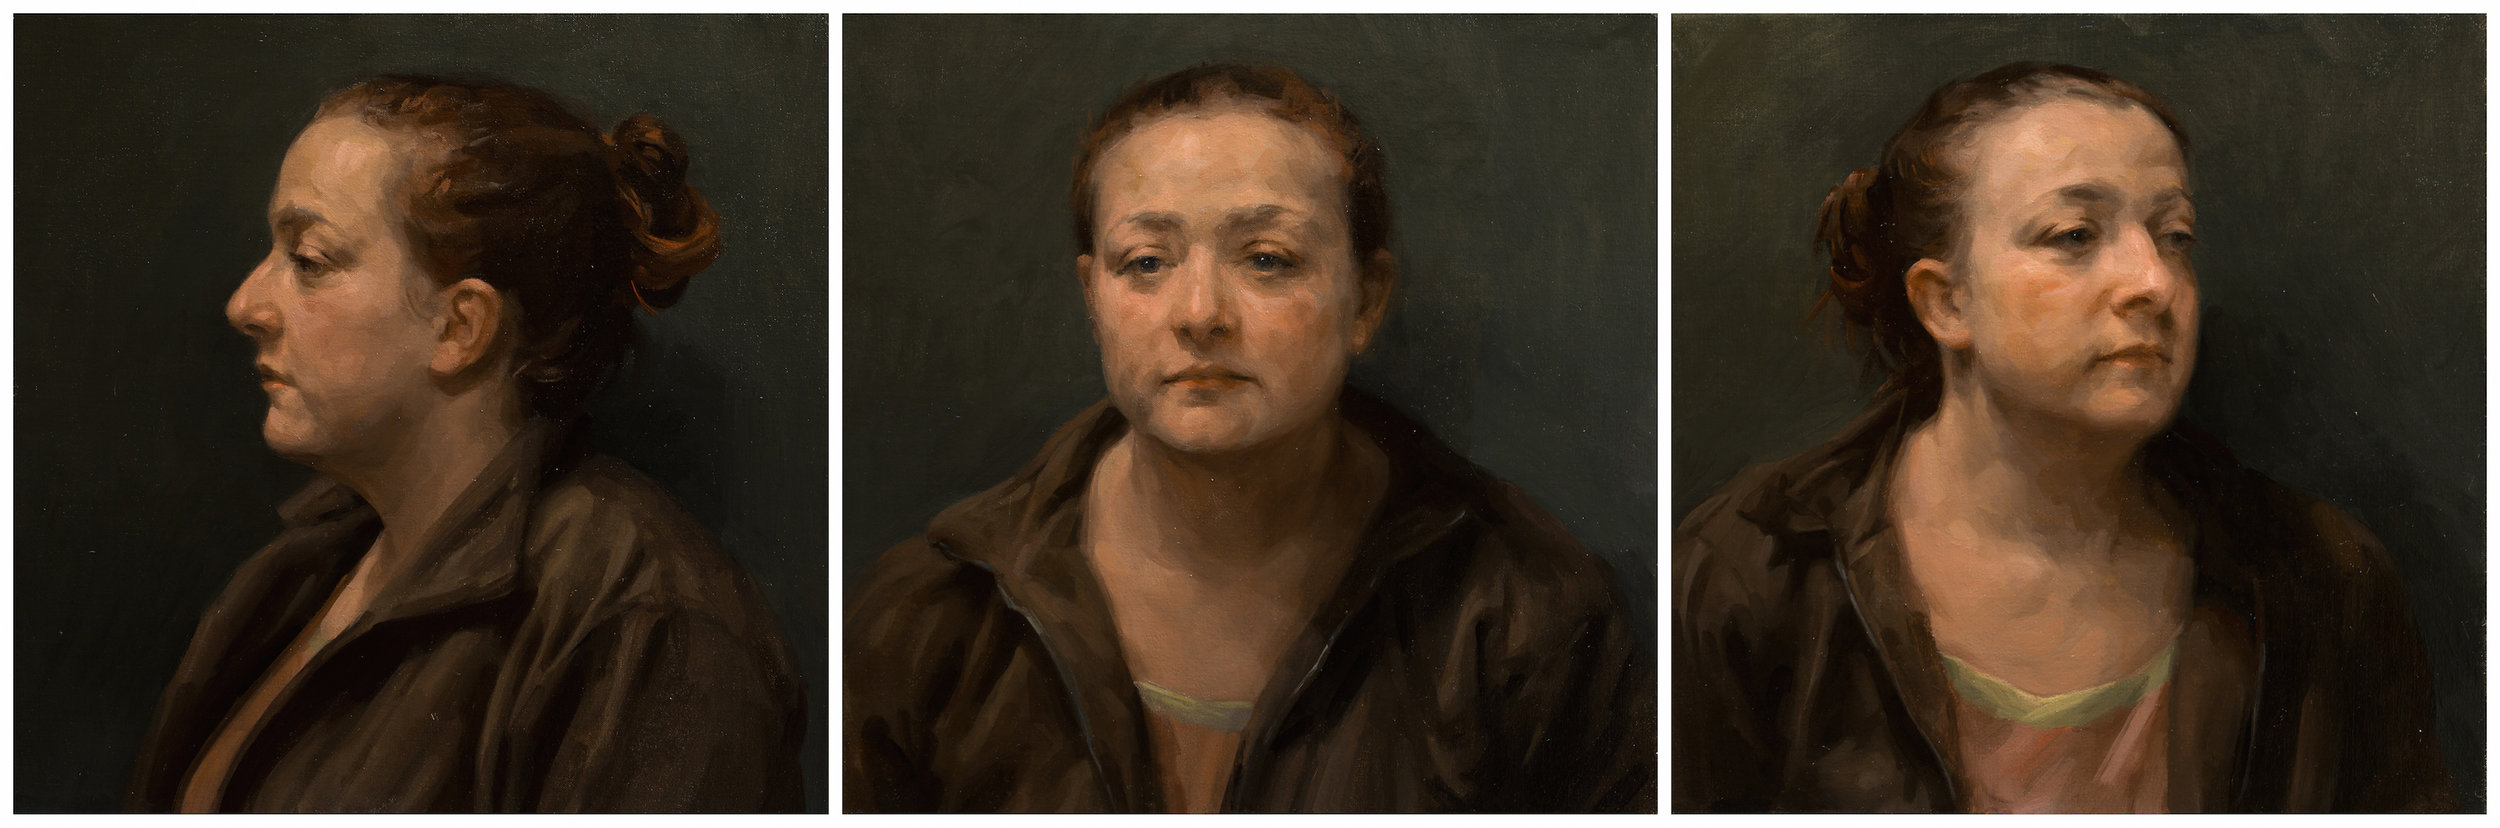 'Laury', Frances Bell, Oil on canvas, 138 x 46 x 2 cm